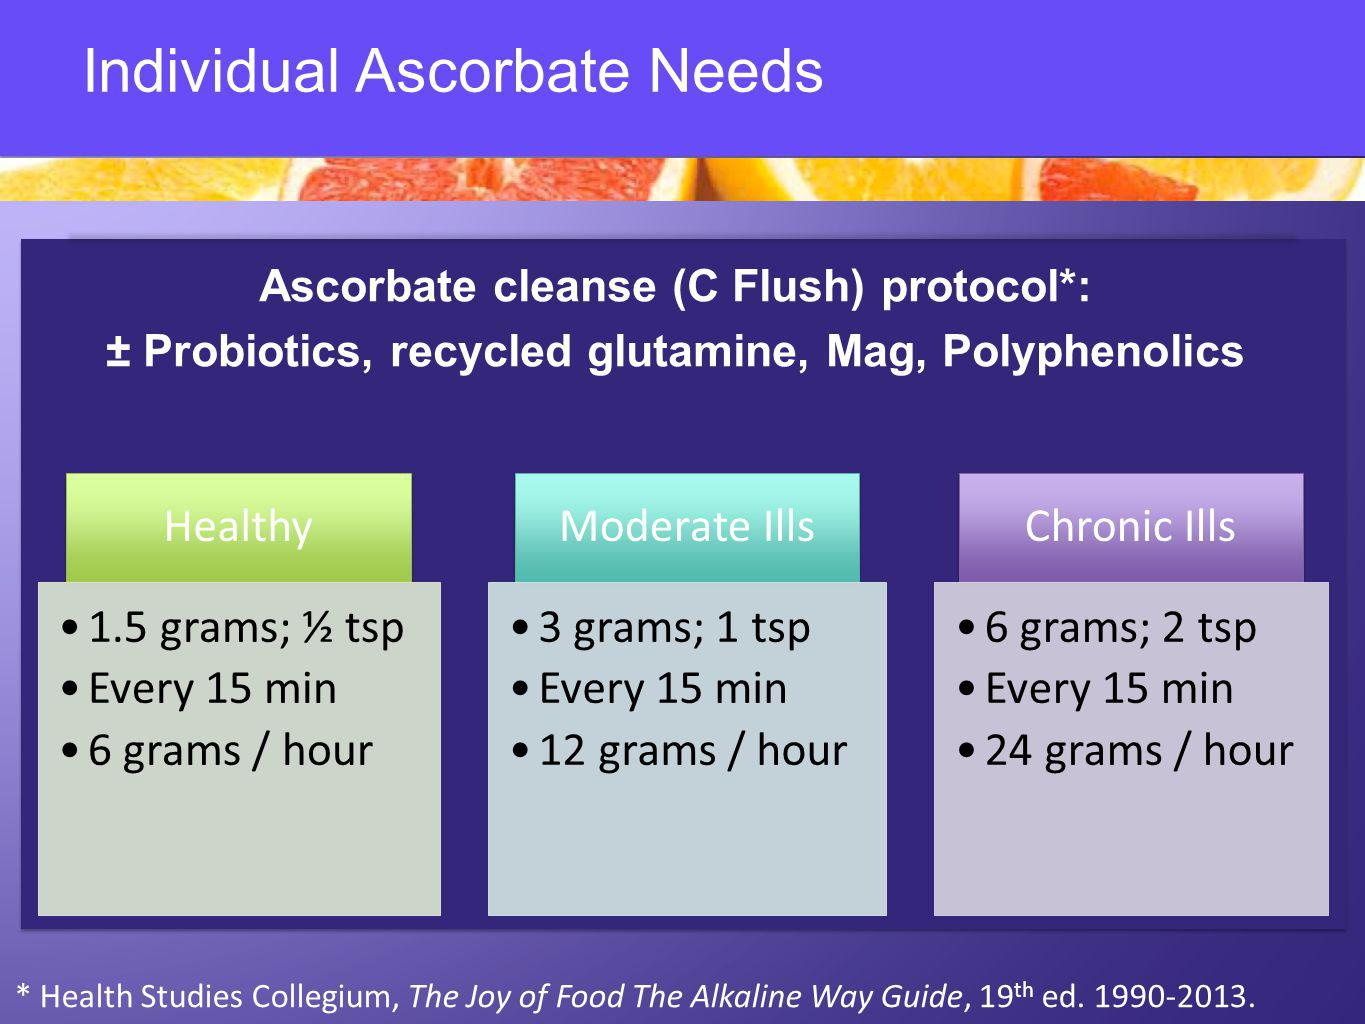 Individual Ascorbate Needs Ascorbate cleanse (C Flush) protocol*: ± Probiotics, recycled glutamine, Mag, Polyphenolics Healthy 1.5 grams; ½ tsp Every 15 min 6 grams / hour Moderate Ills 3 grams; 1 tsp Every 15 min 12 grams / hour Chronic Ills 6 grams; 2 tsp Every 15 min 24 grams / hour * Health Studies Collegium, The Joy of Food The Alkaline Way Guide, 19 th ed.